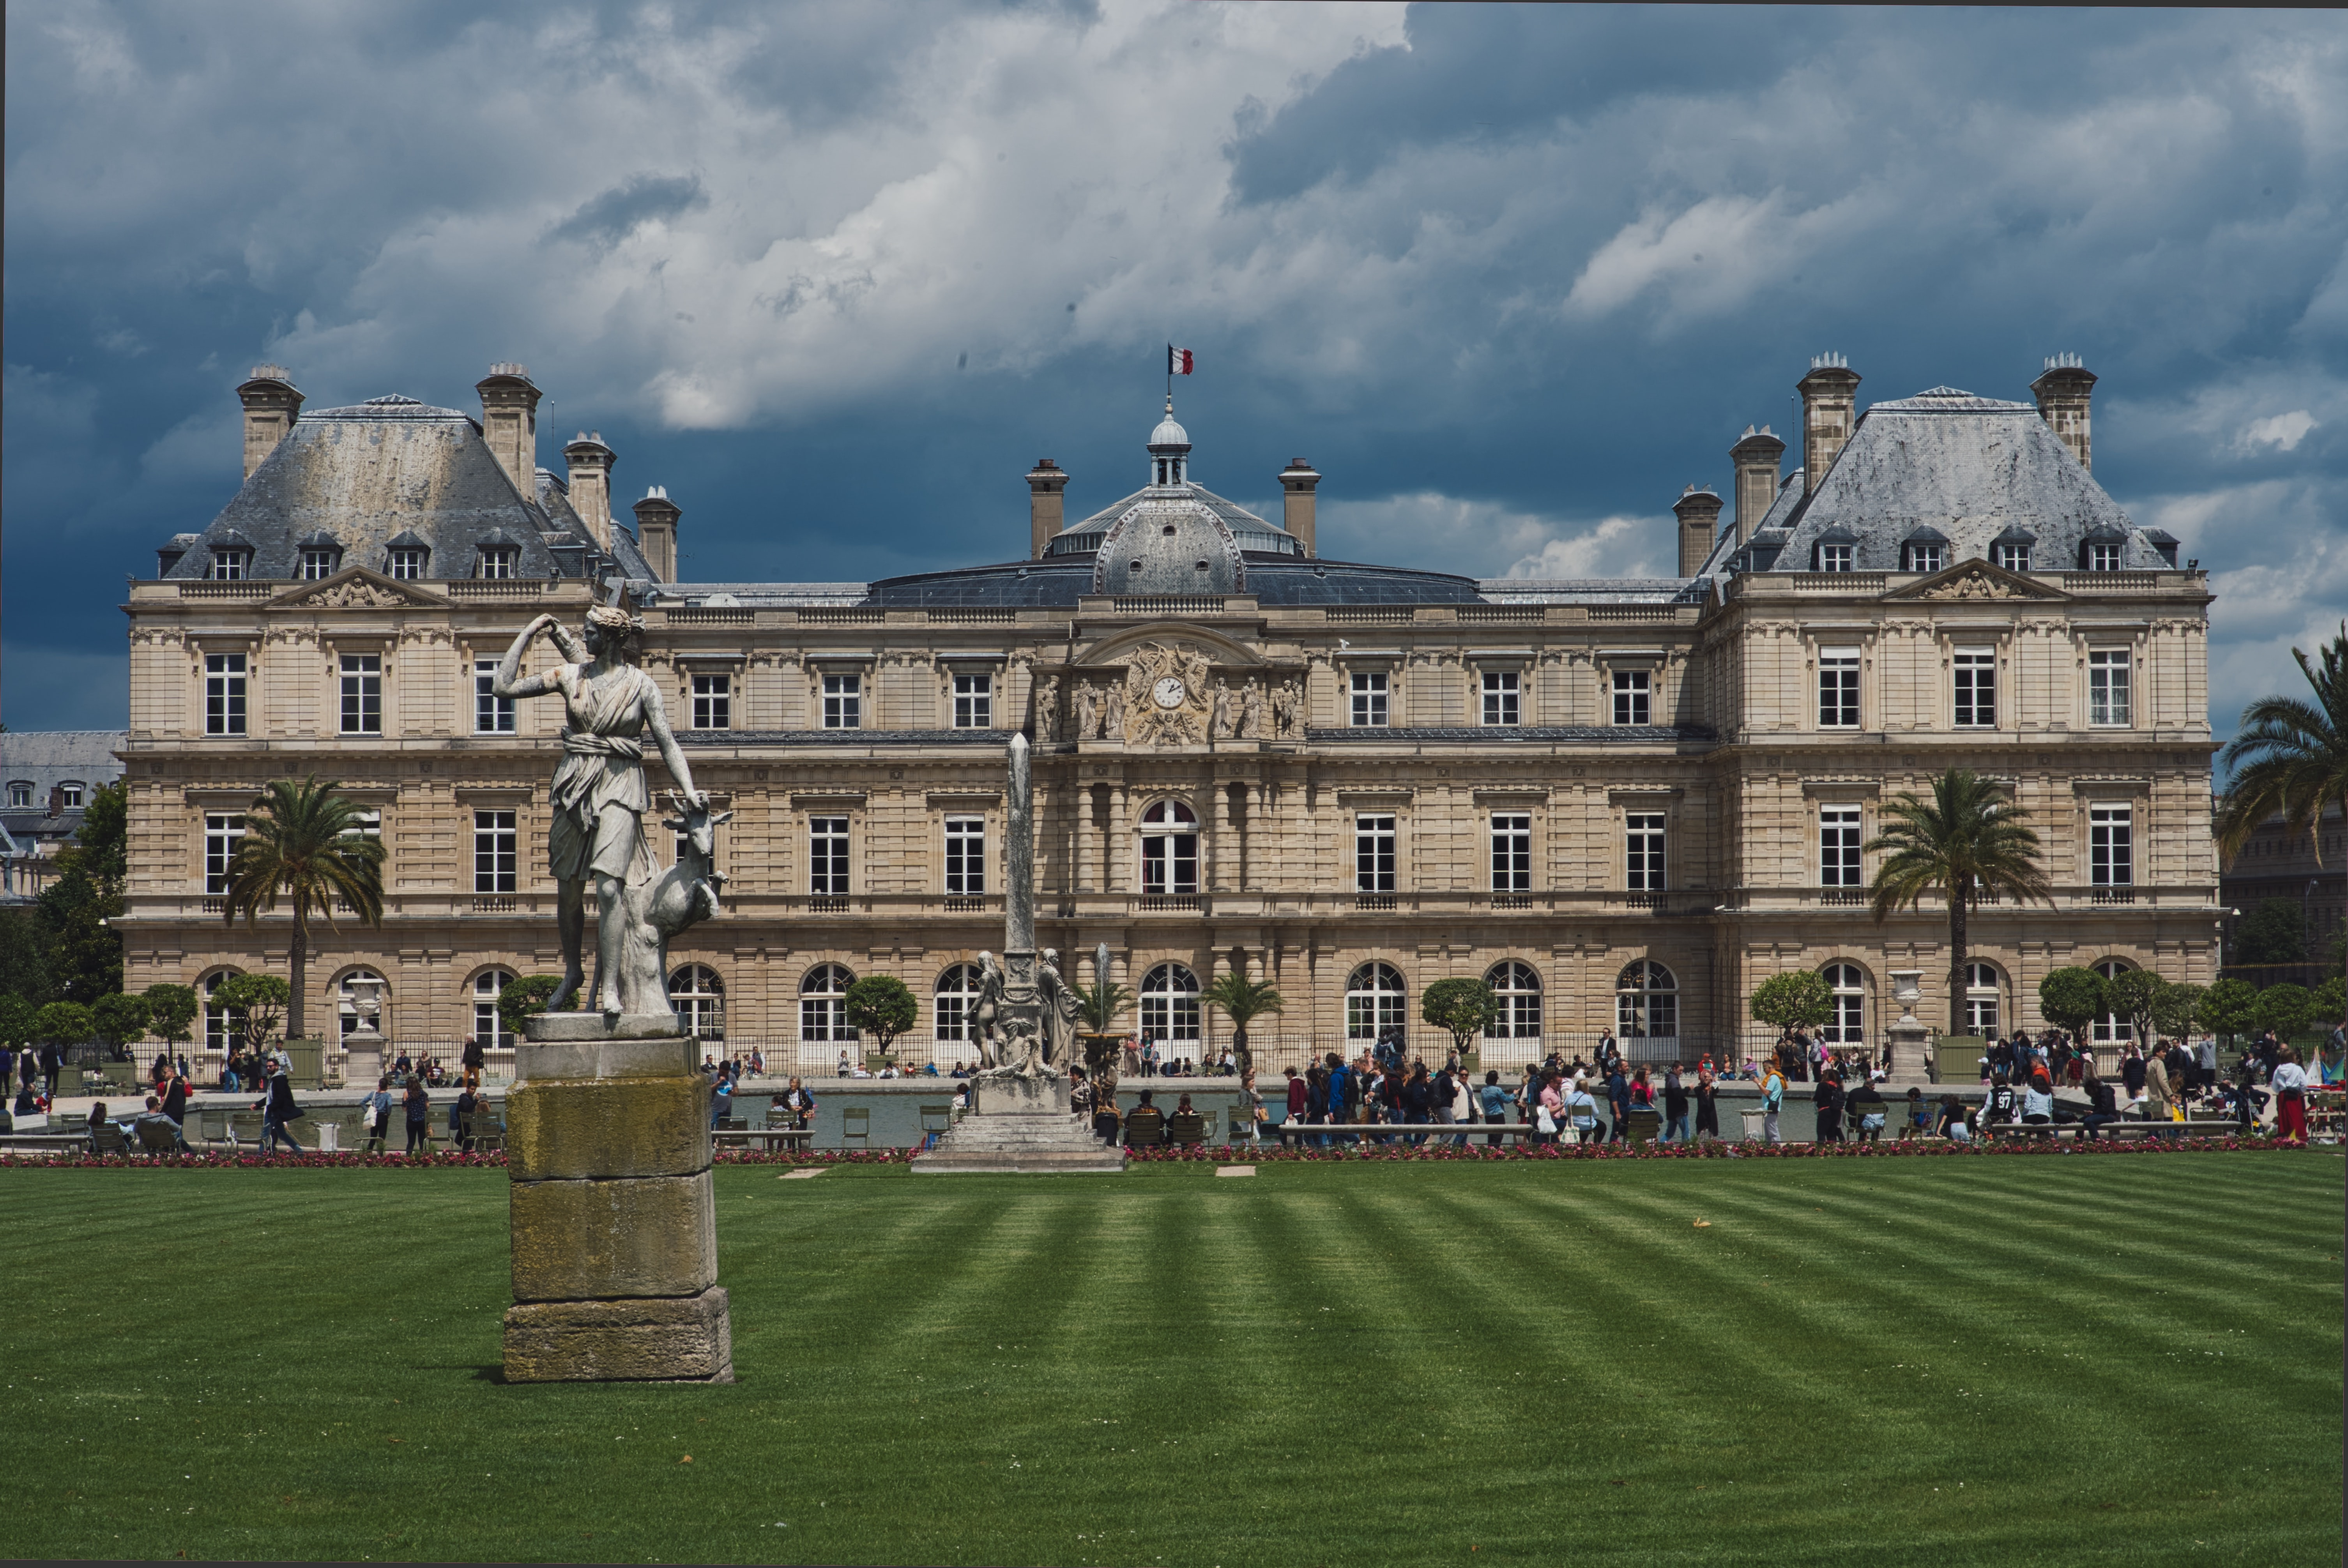 Luxembourg Palace, 15 romantic places to visit in Paris